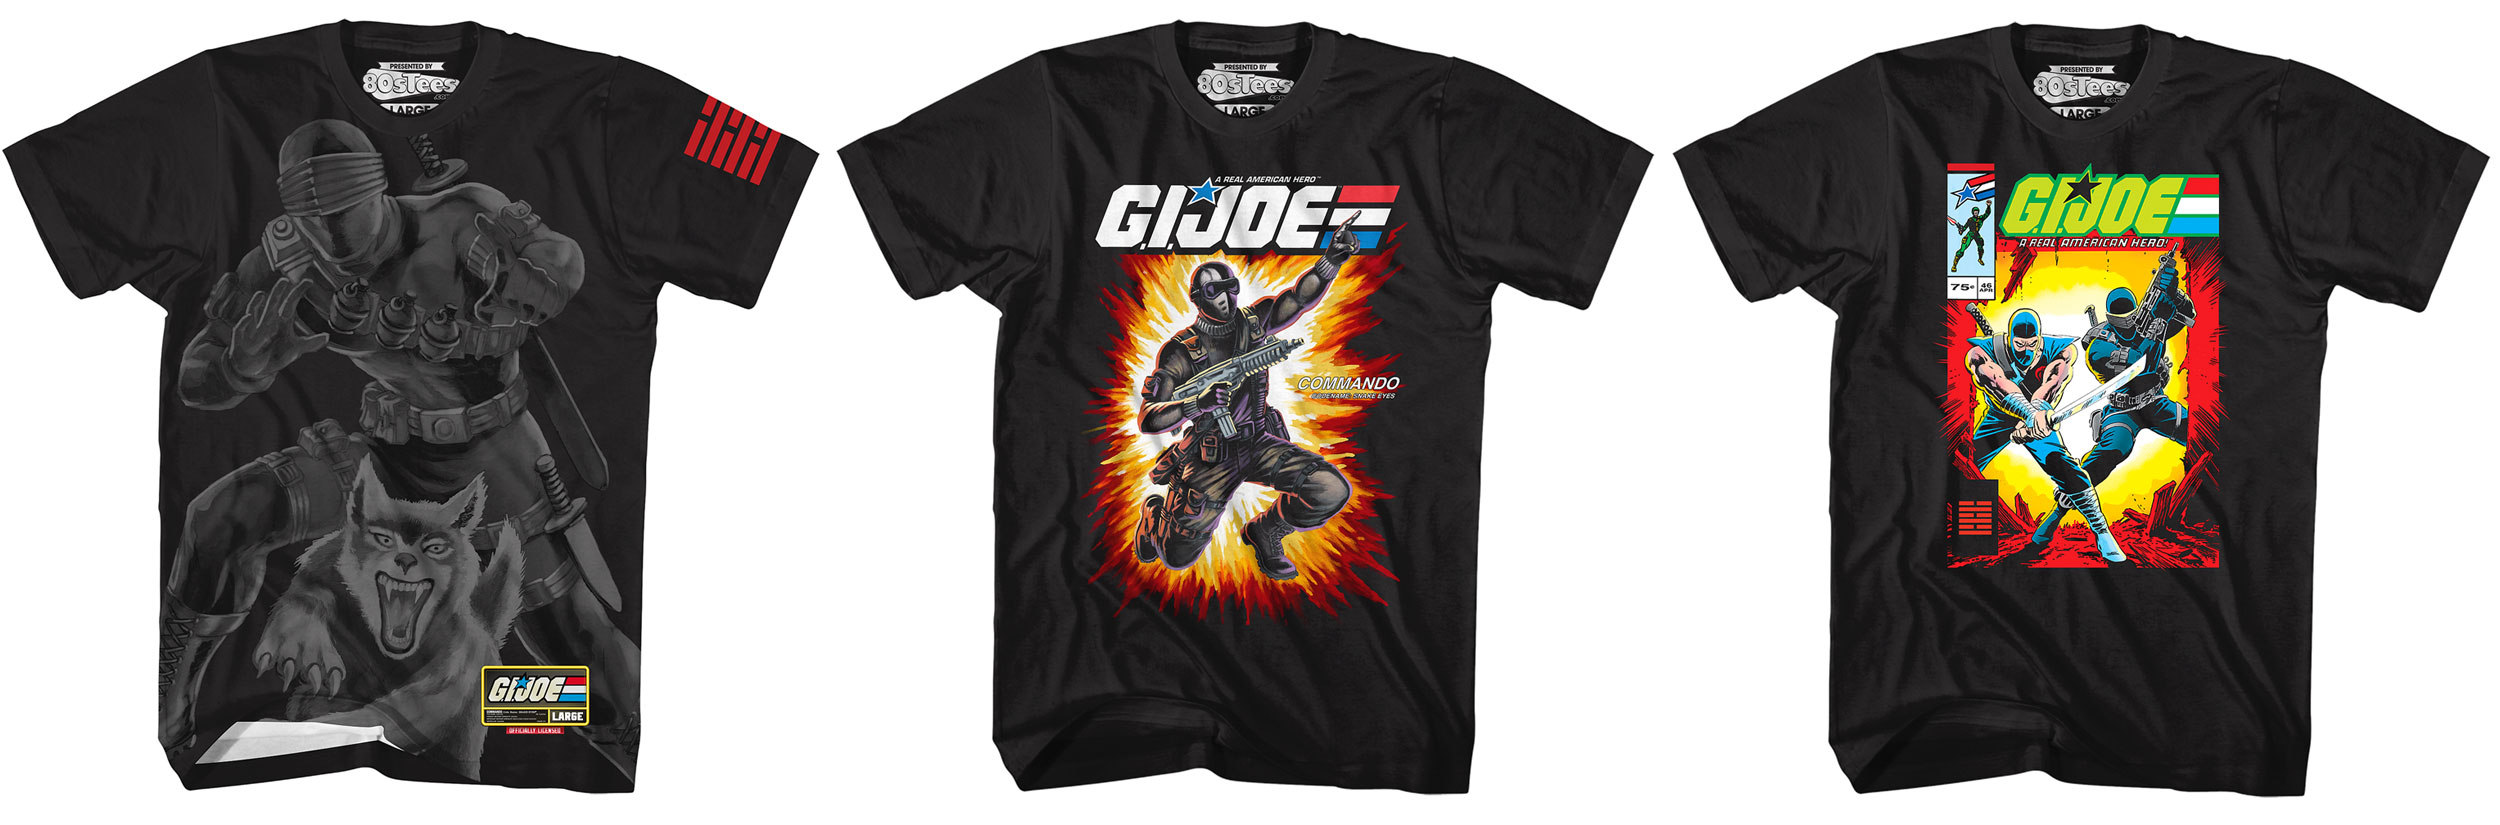 snake-eyes-gi-joe-tee-shirts